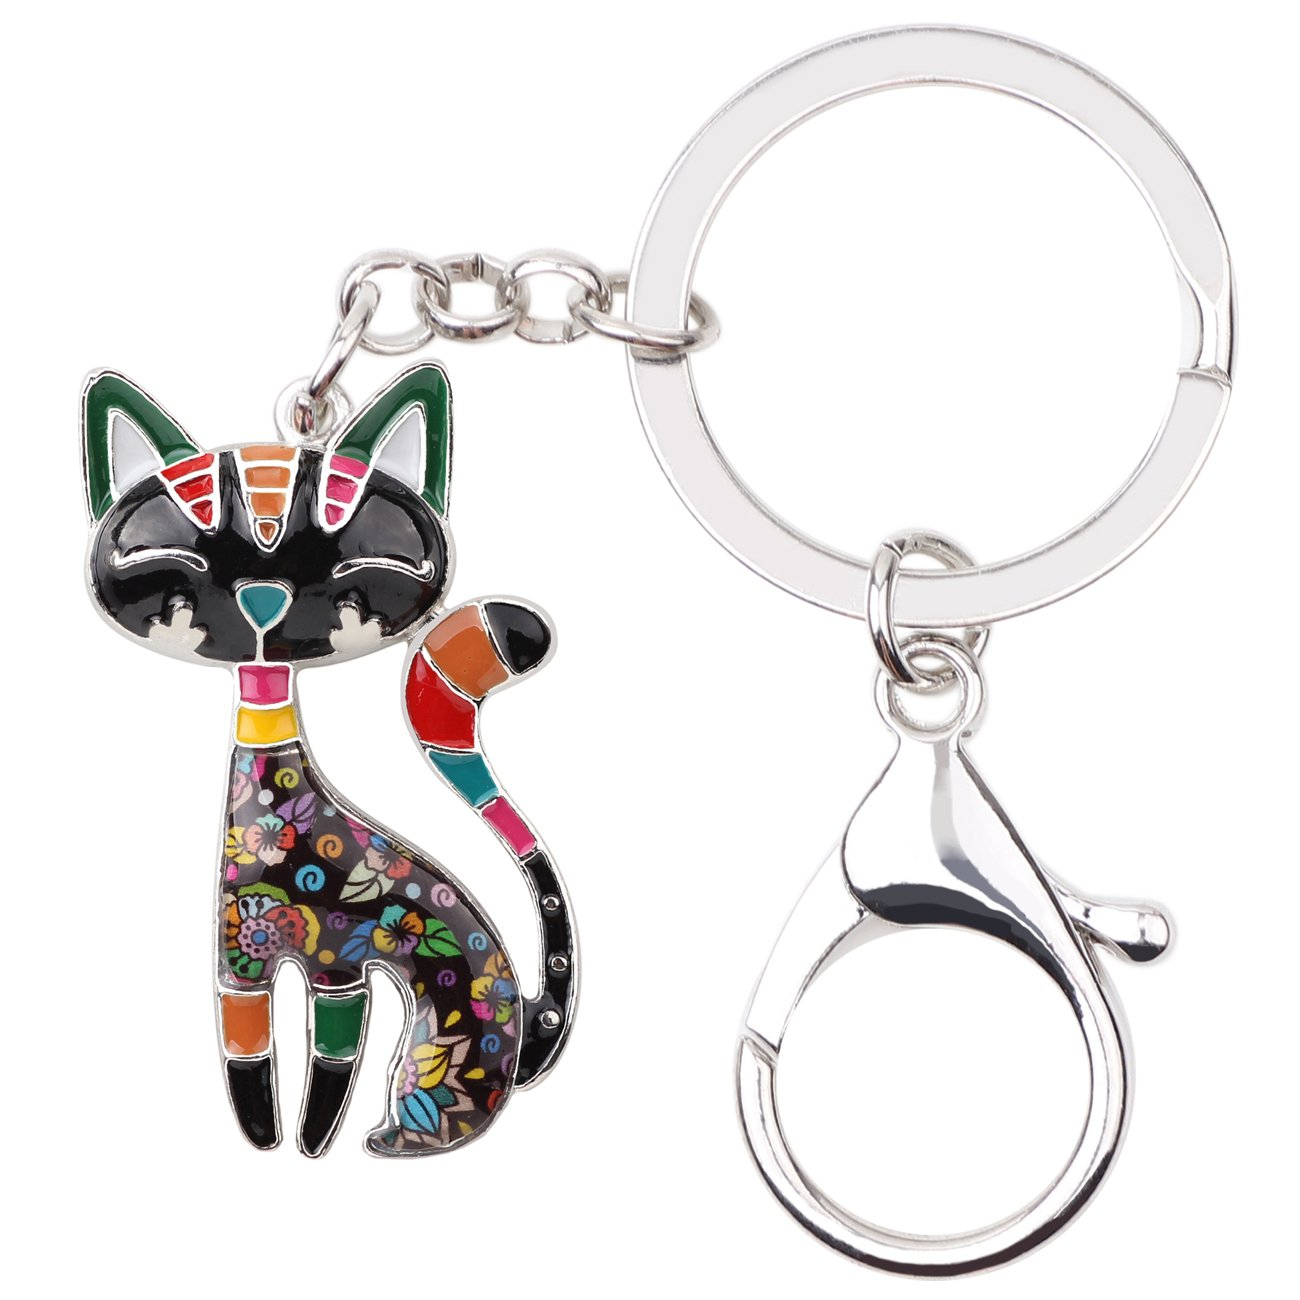 Bonsny Enamel Alloy Chain Cat Key Chains For Women Car Purse Handbag Charms (Grey)